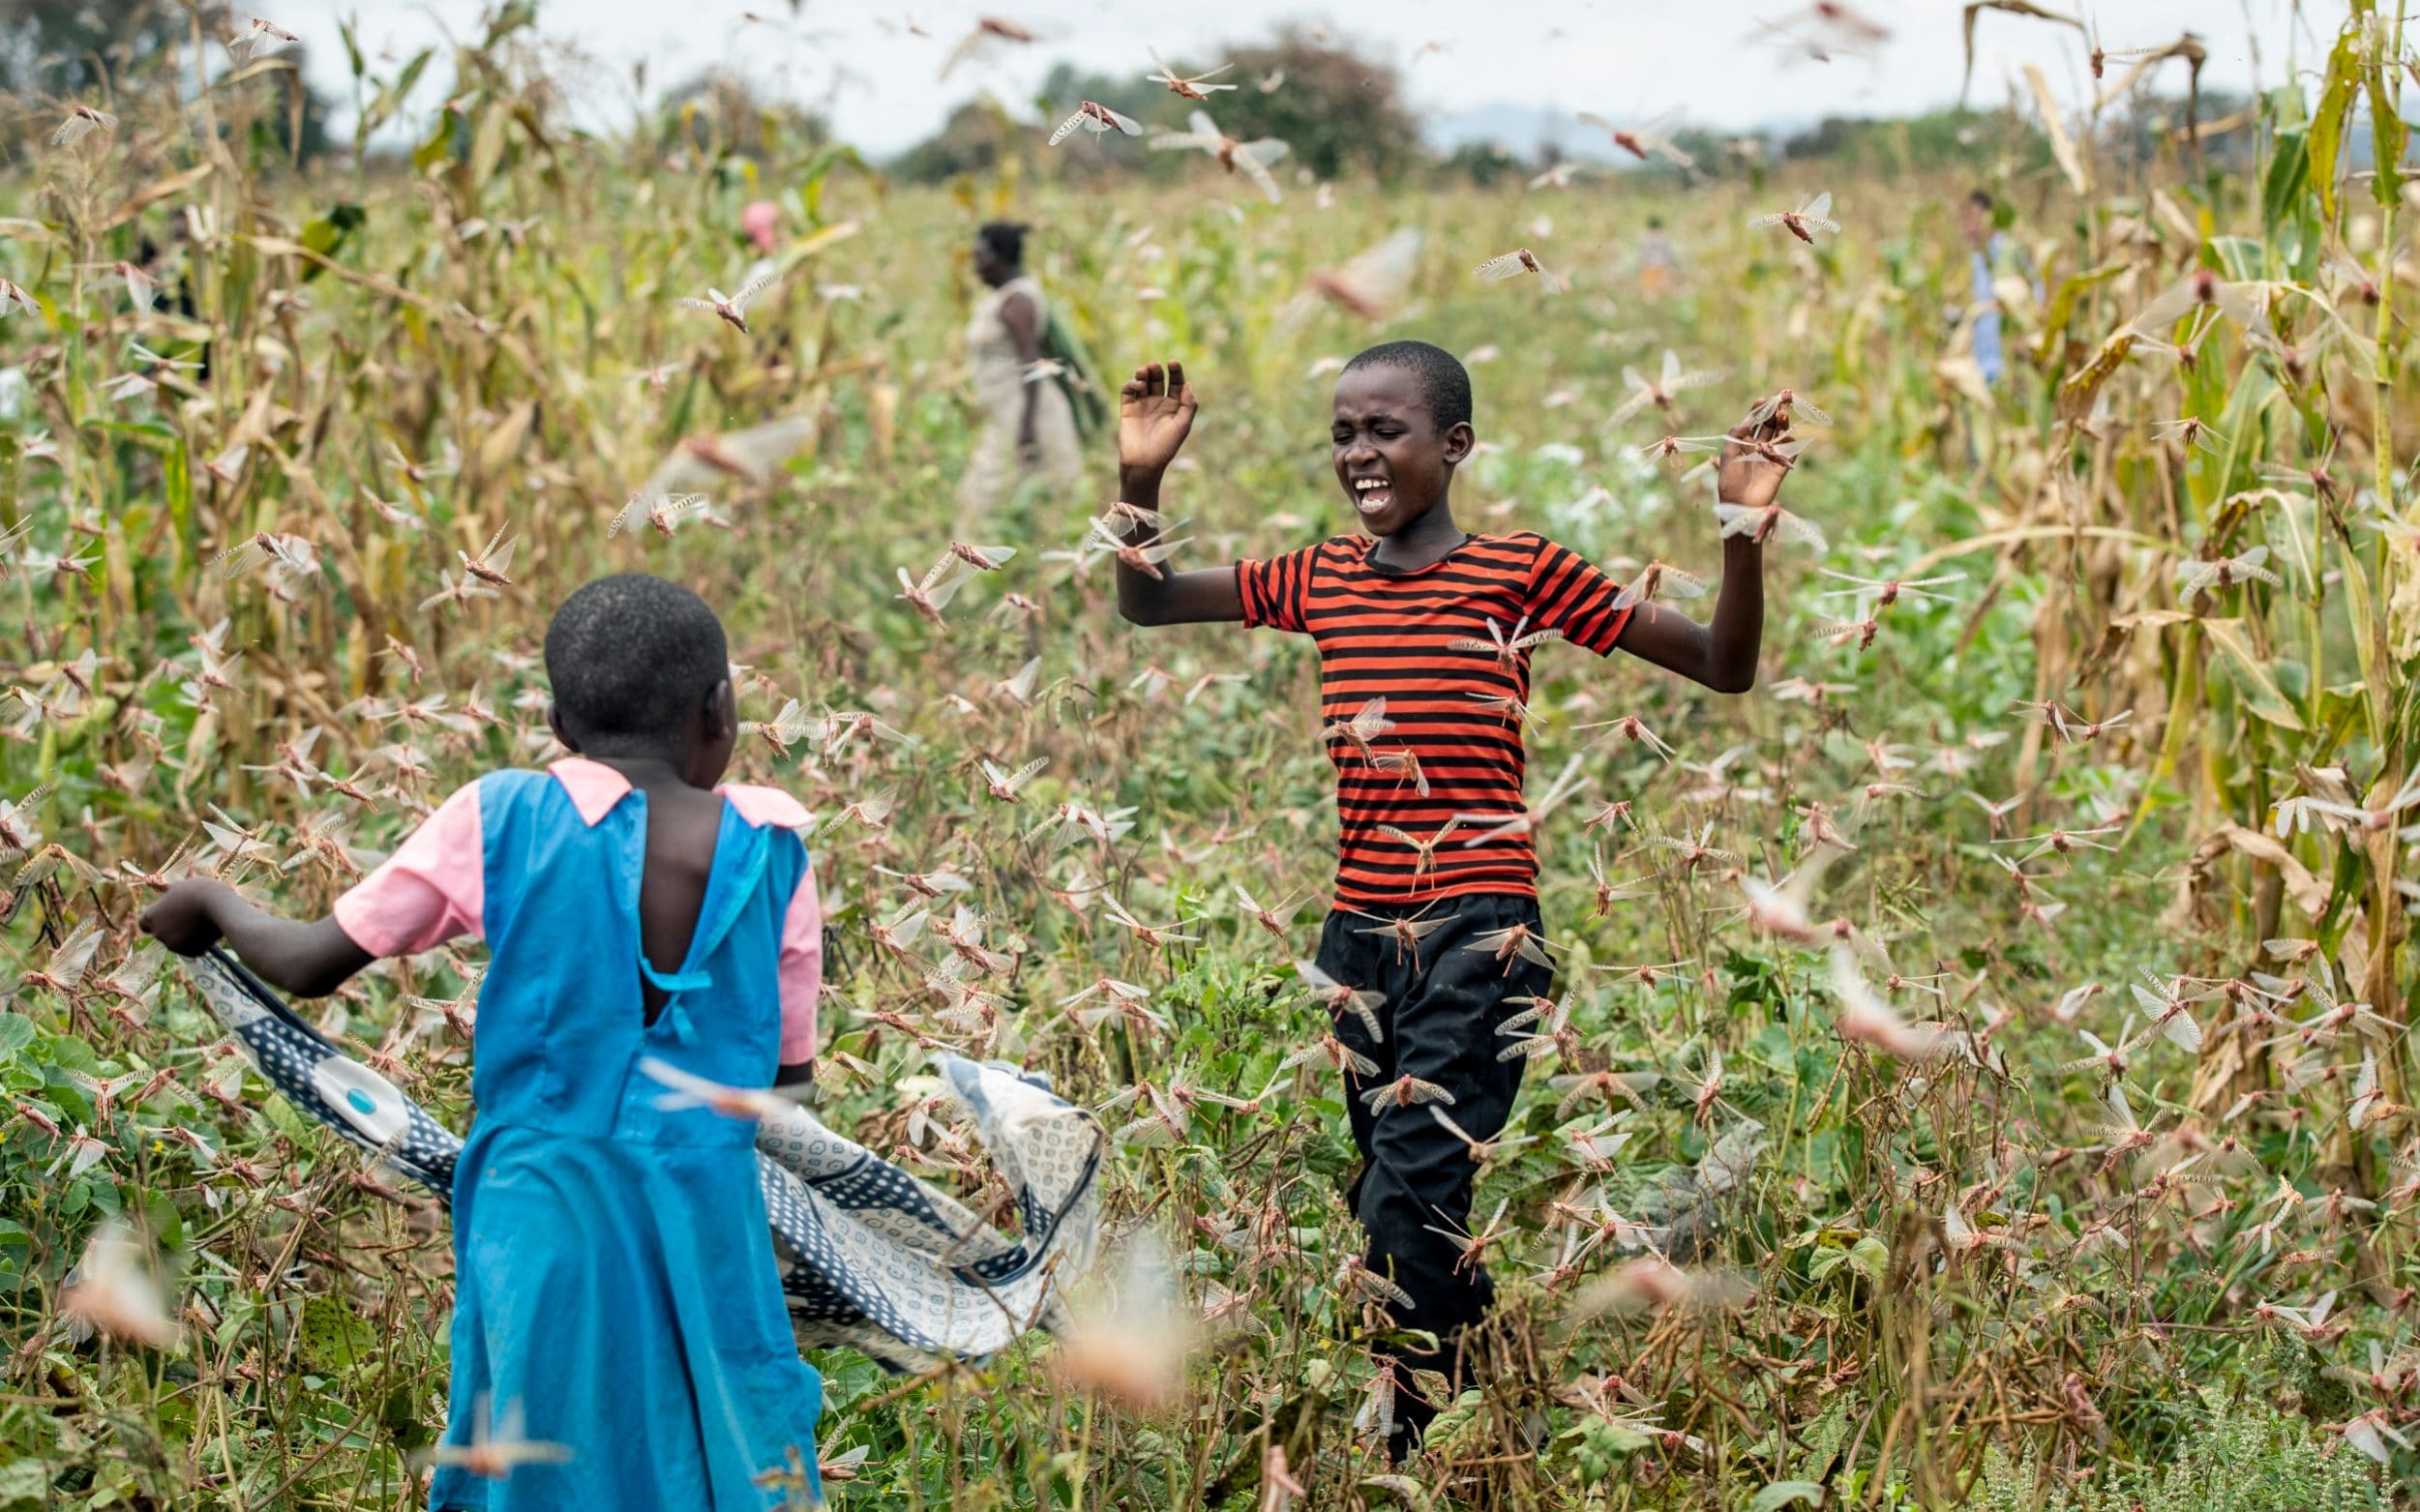 The New Crisis: Locust Swarms in East Africa | Voices of Youth